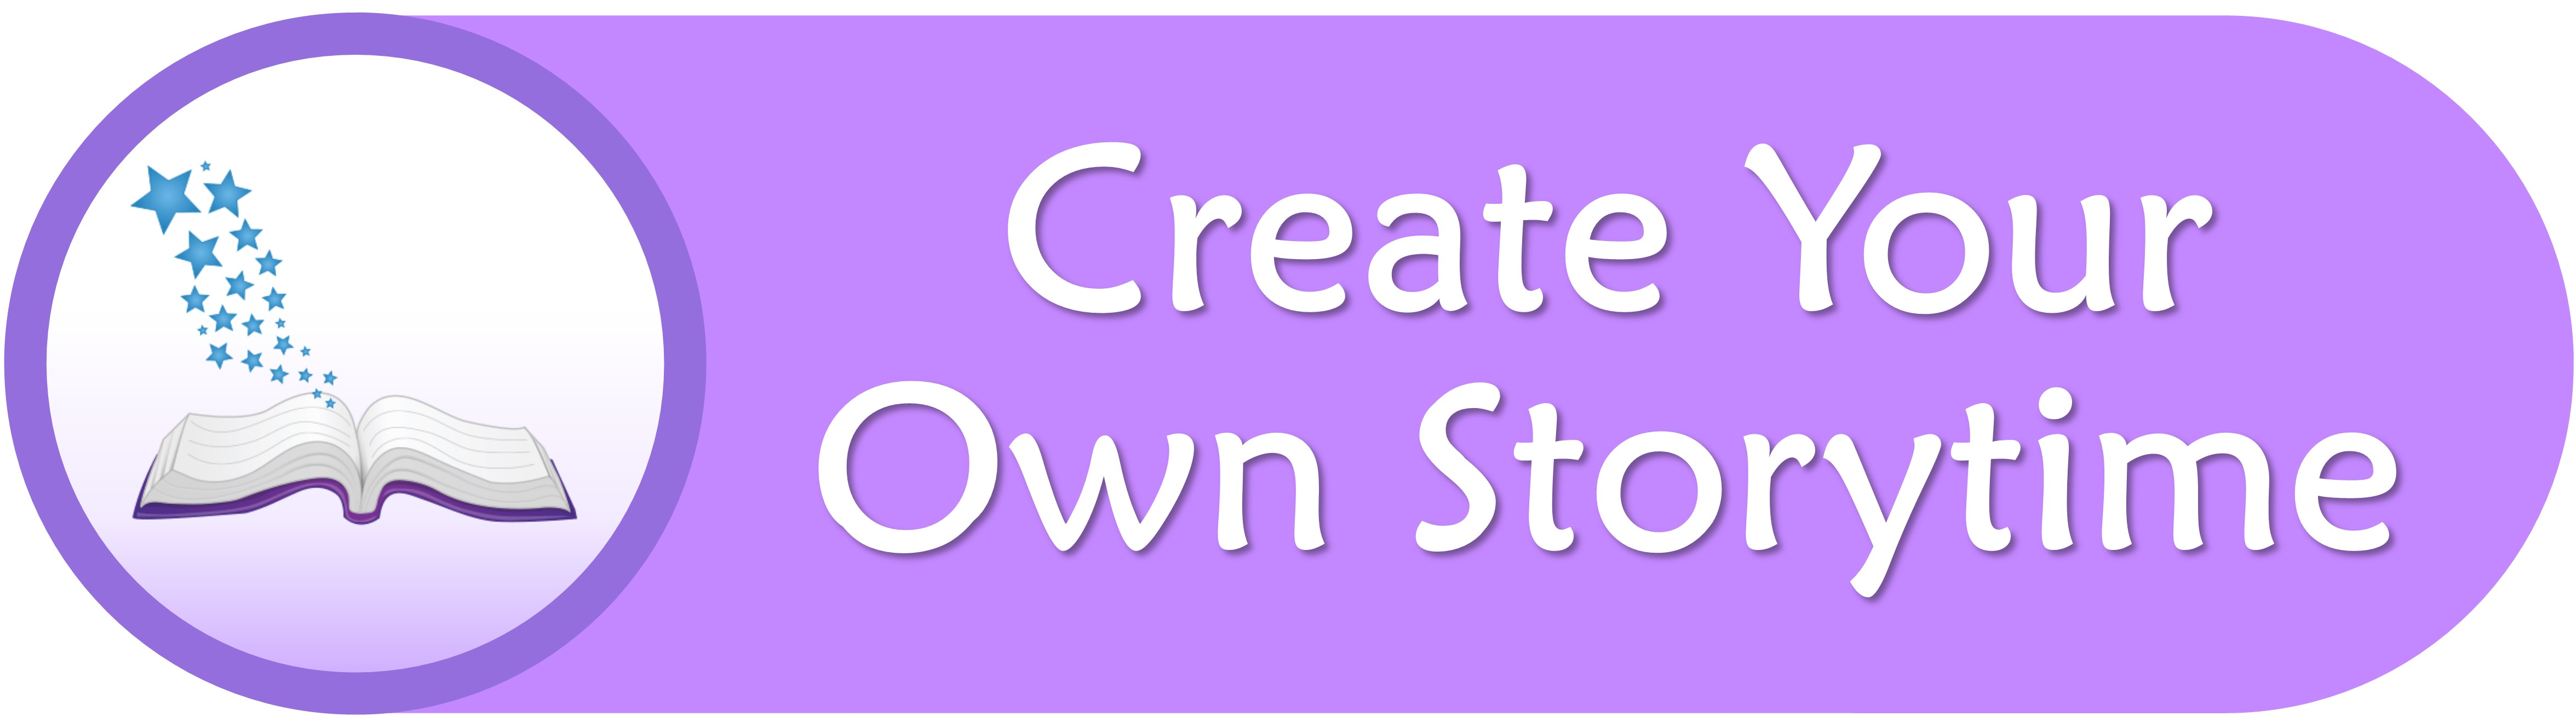 Button_template - create your own storytime